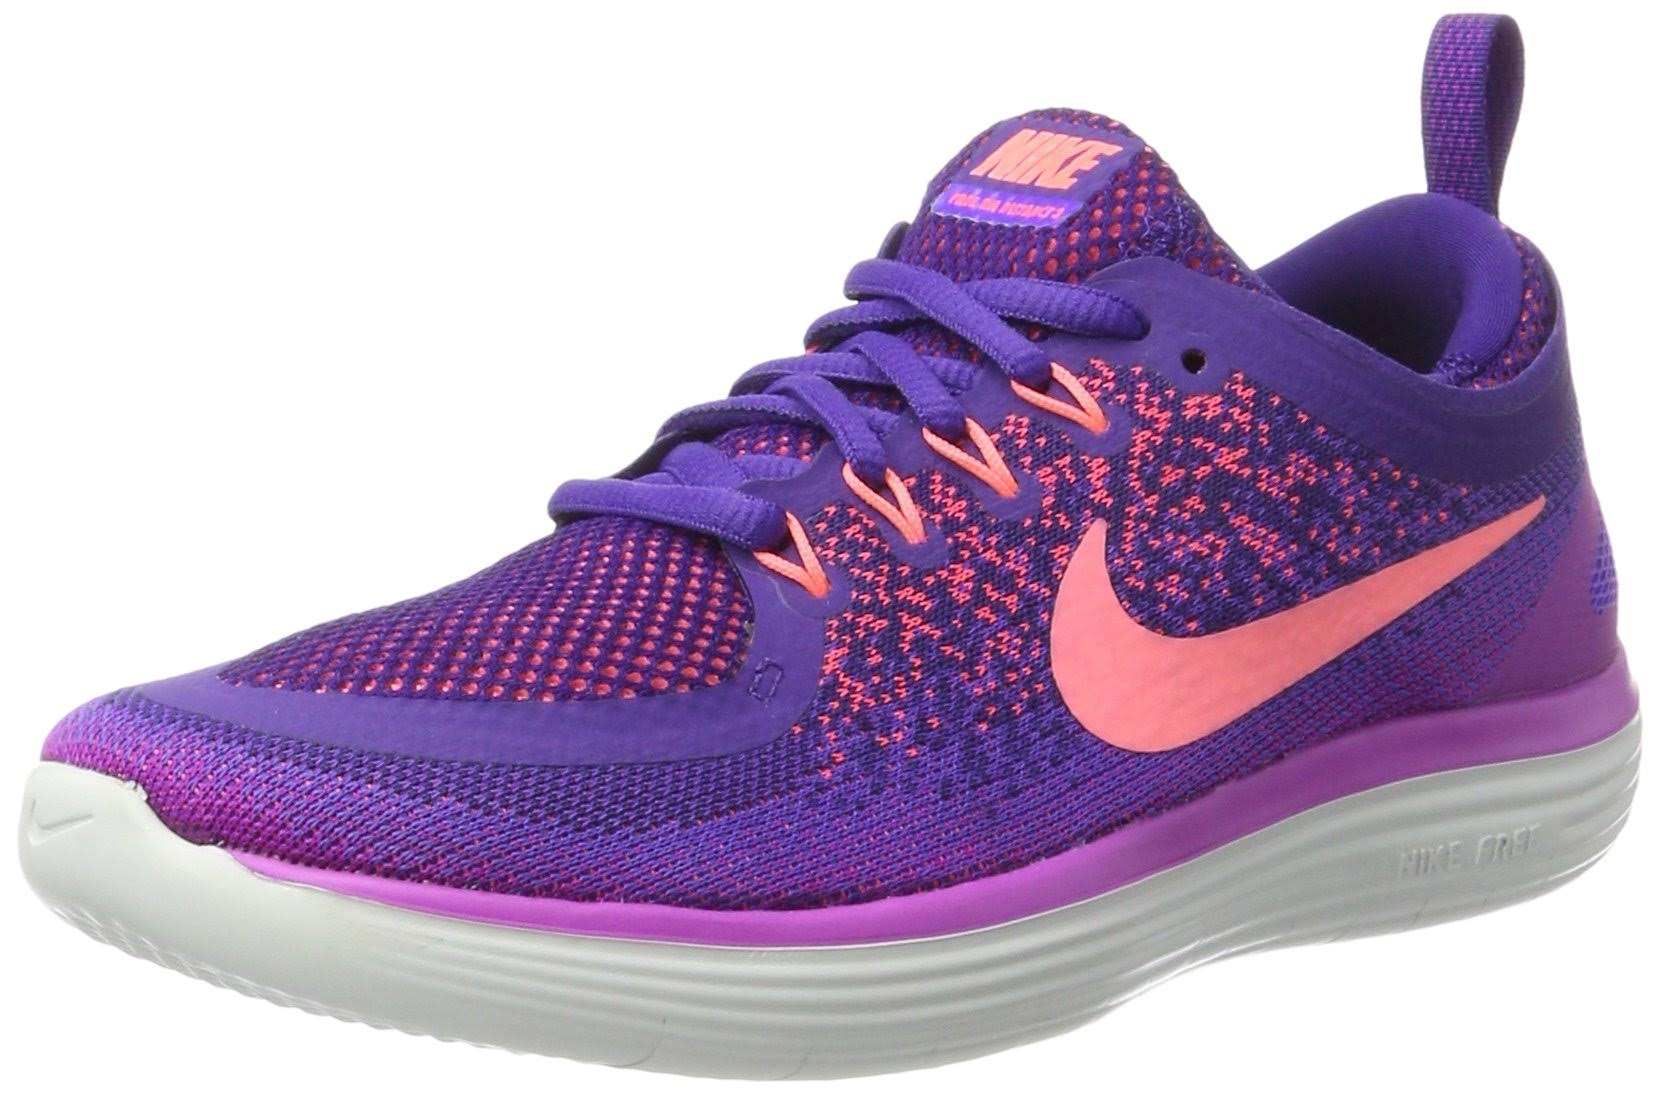 39 Distance Nike Violett 2 Purple Purple Damen Grape Glow hyper lava Free Eu Laufschuhe court Run xxg4O